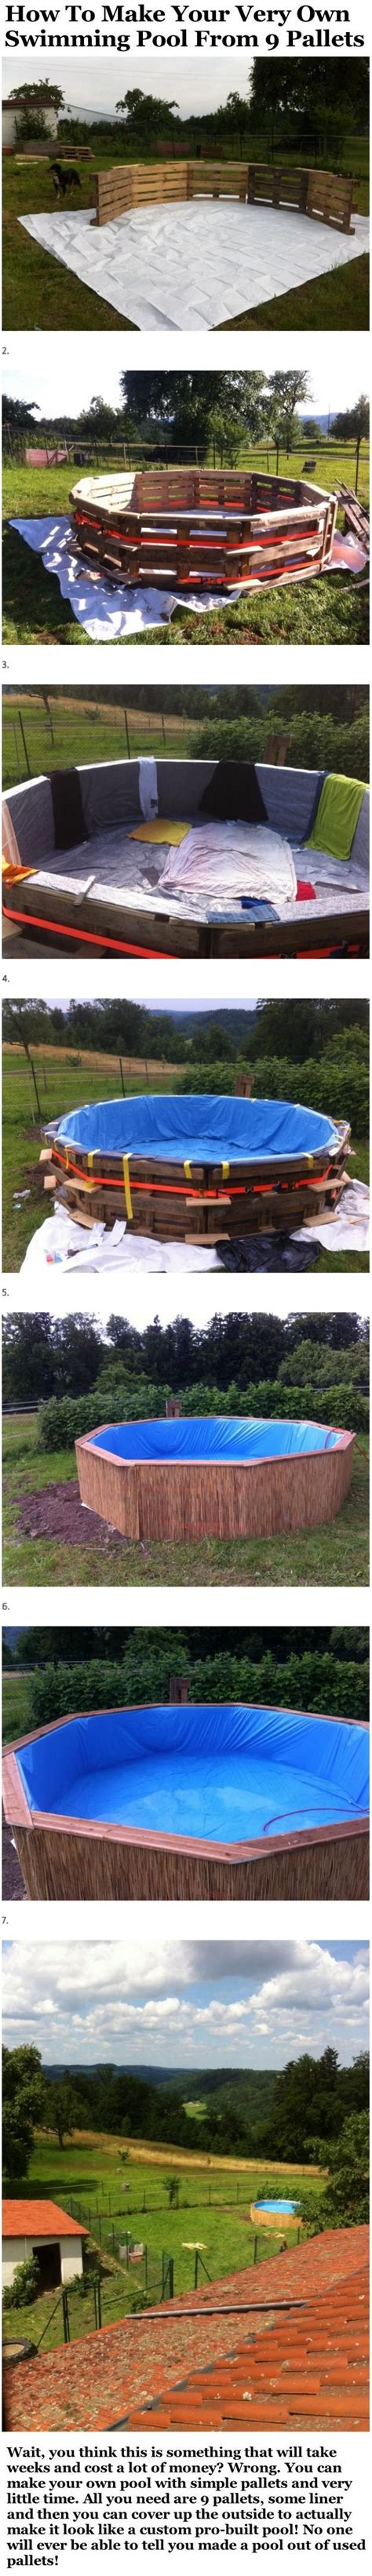 how to make a swimming pool in your backyard how to make your very own swimming pool from 9 pallets pictures photos and images